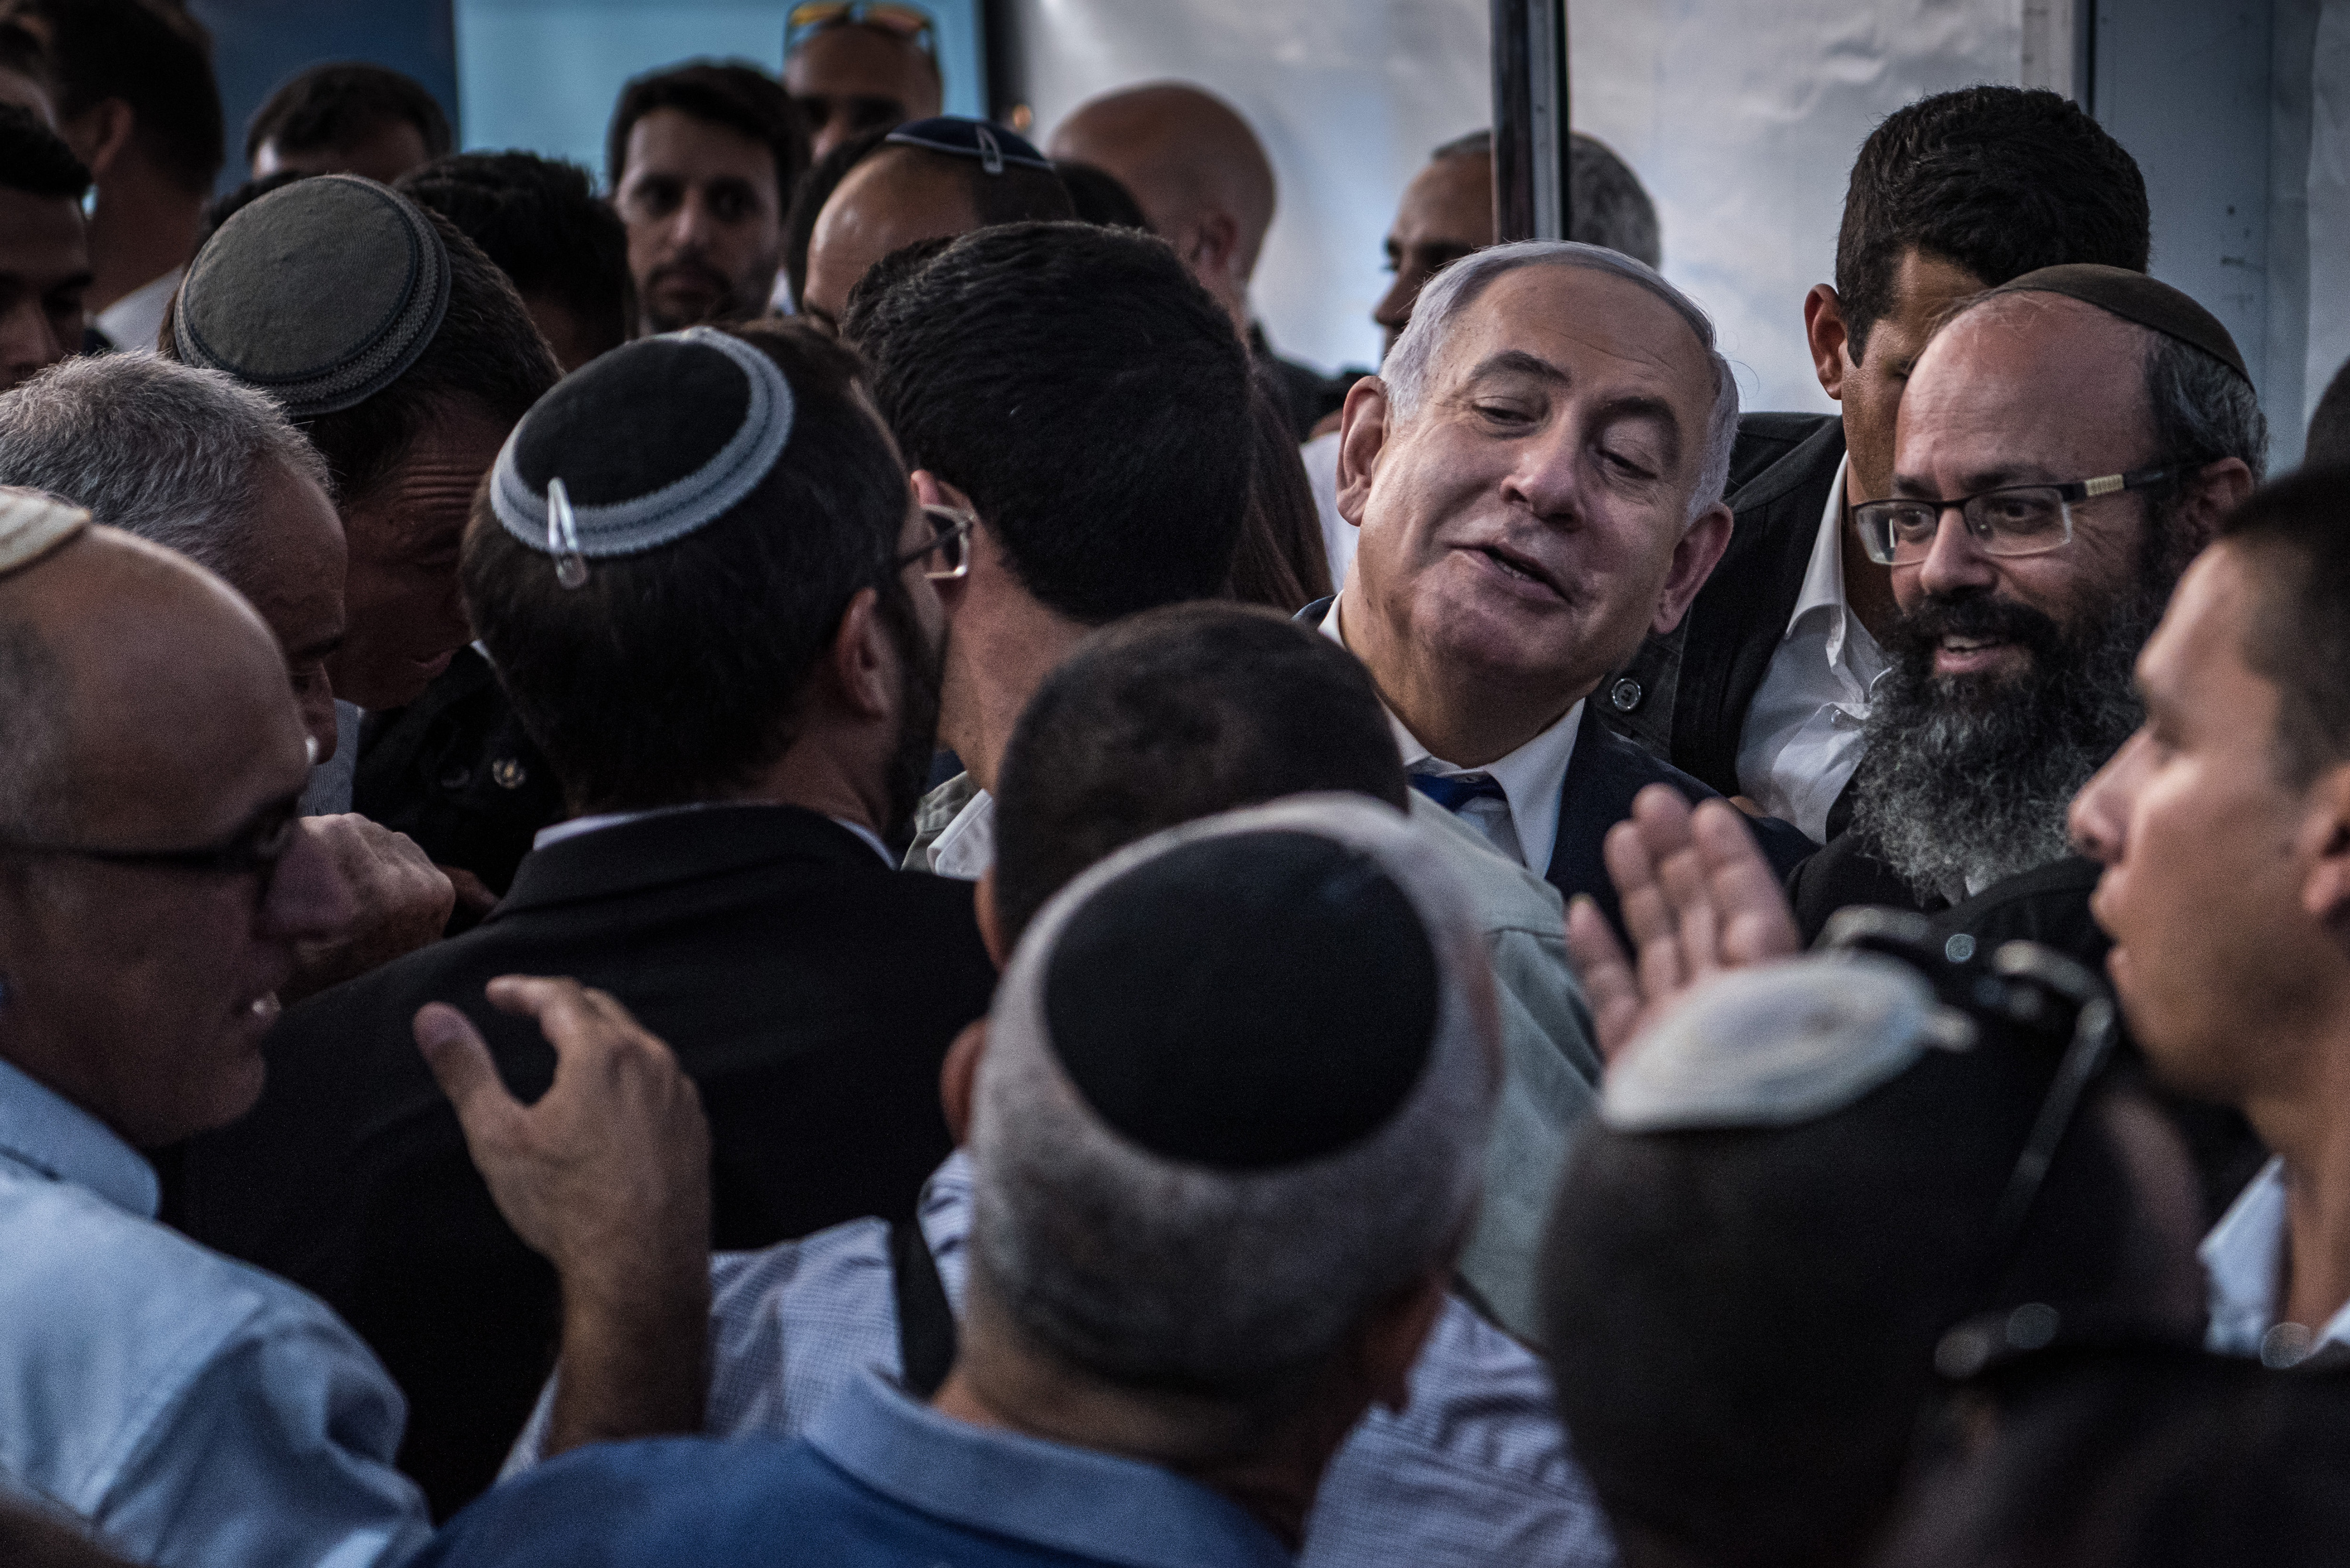 Israel Prime Minister Benjamin Netanyahu meets with members of the Jewish settlement in the West Bank city of Hebron, Wednesday, September 4, 2019